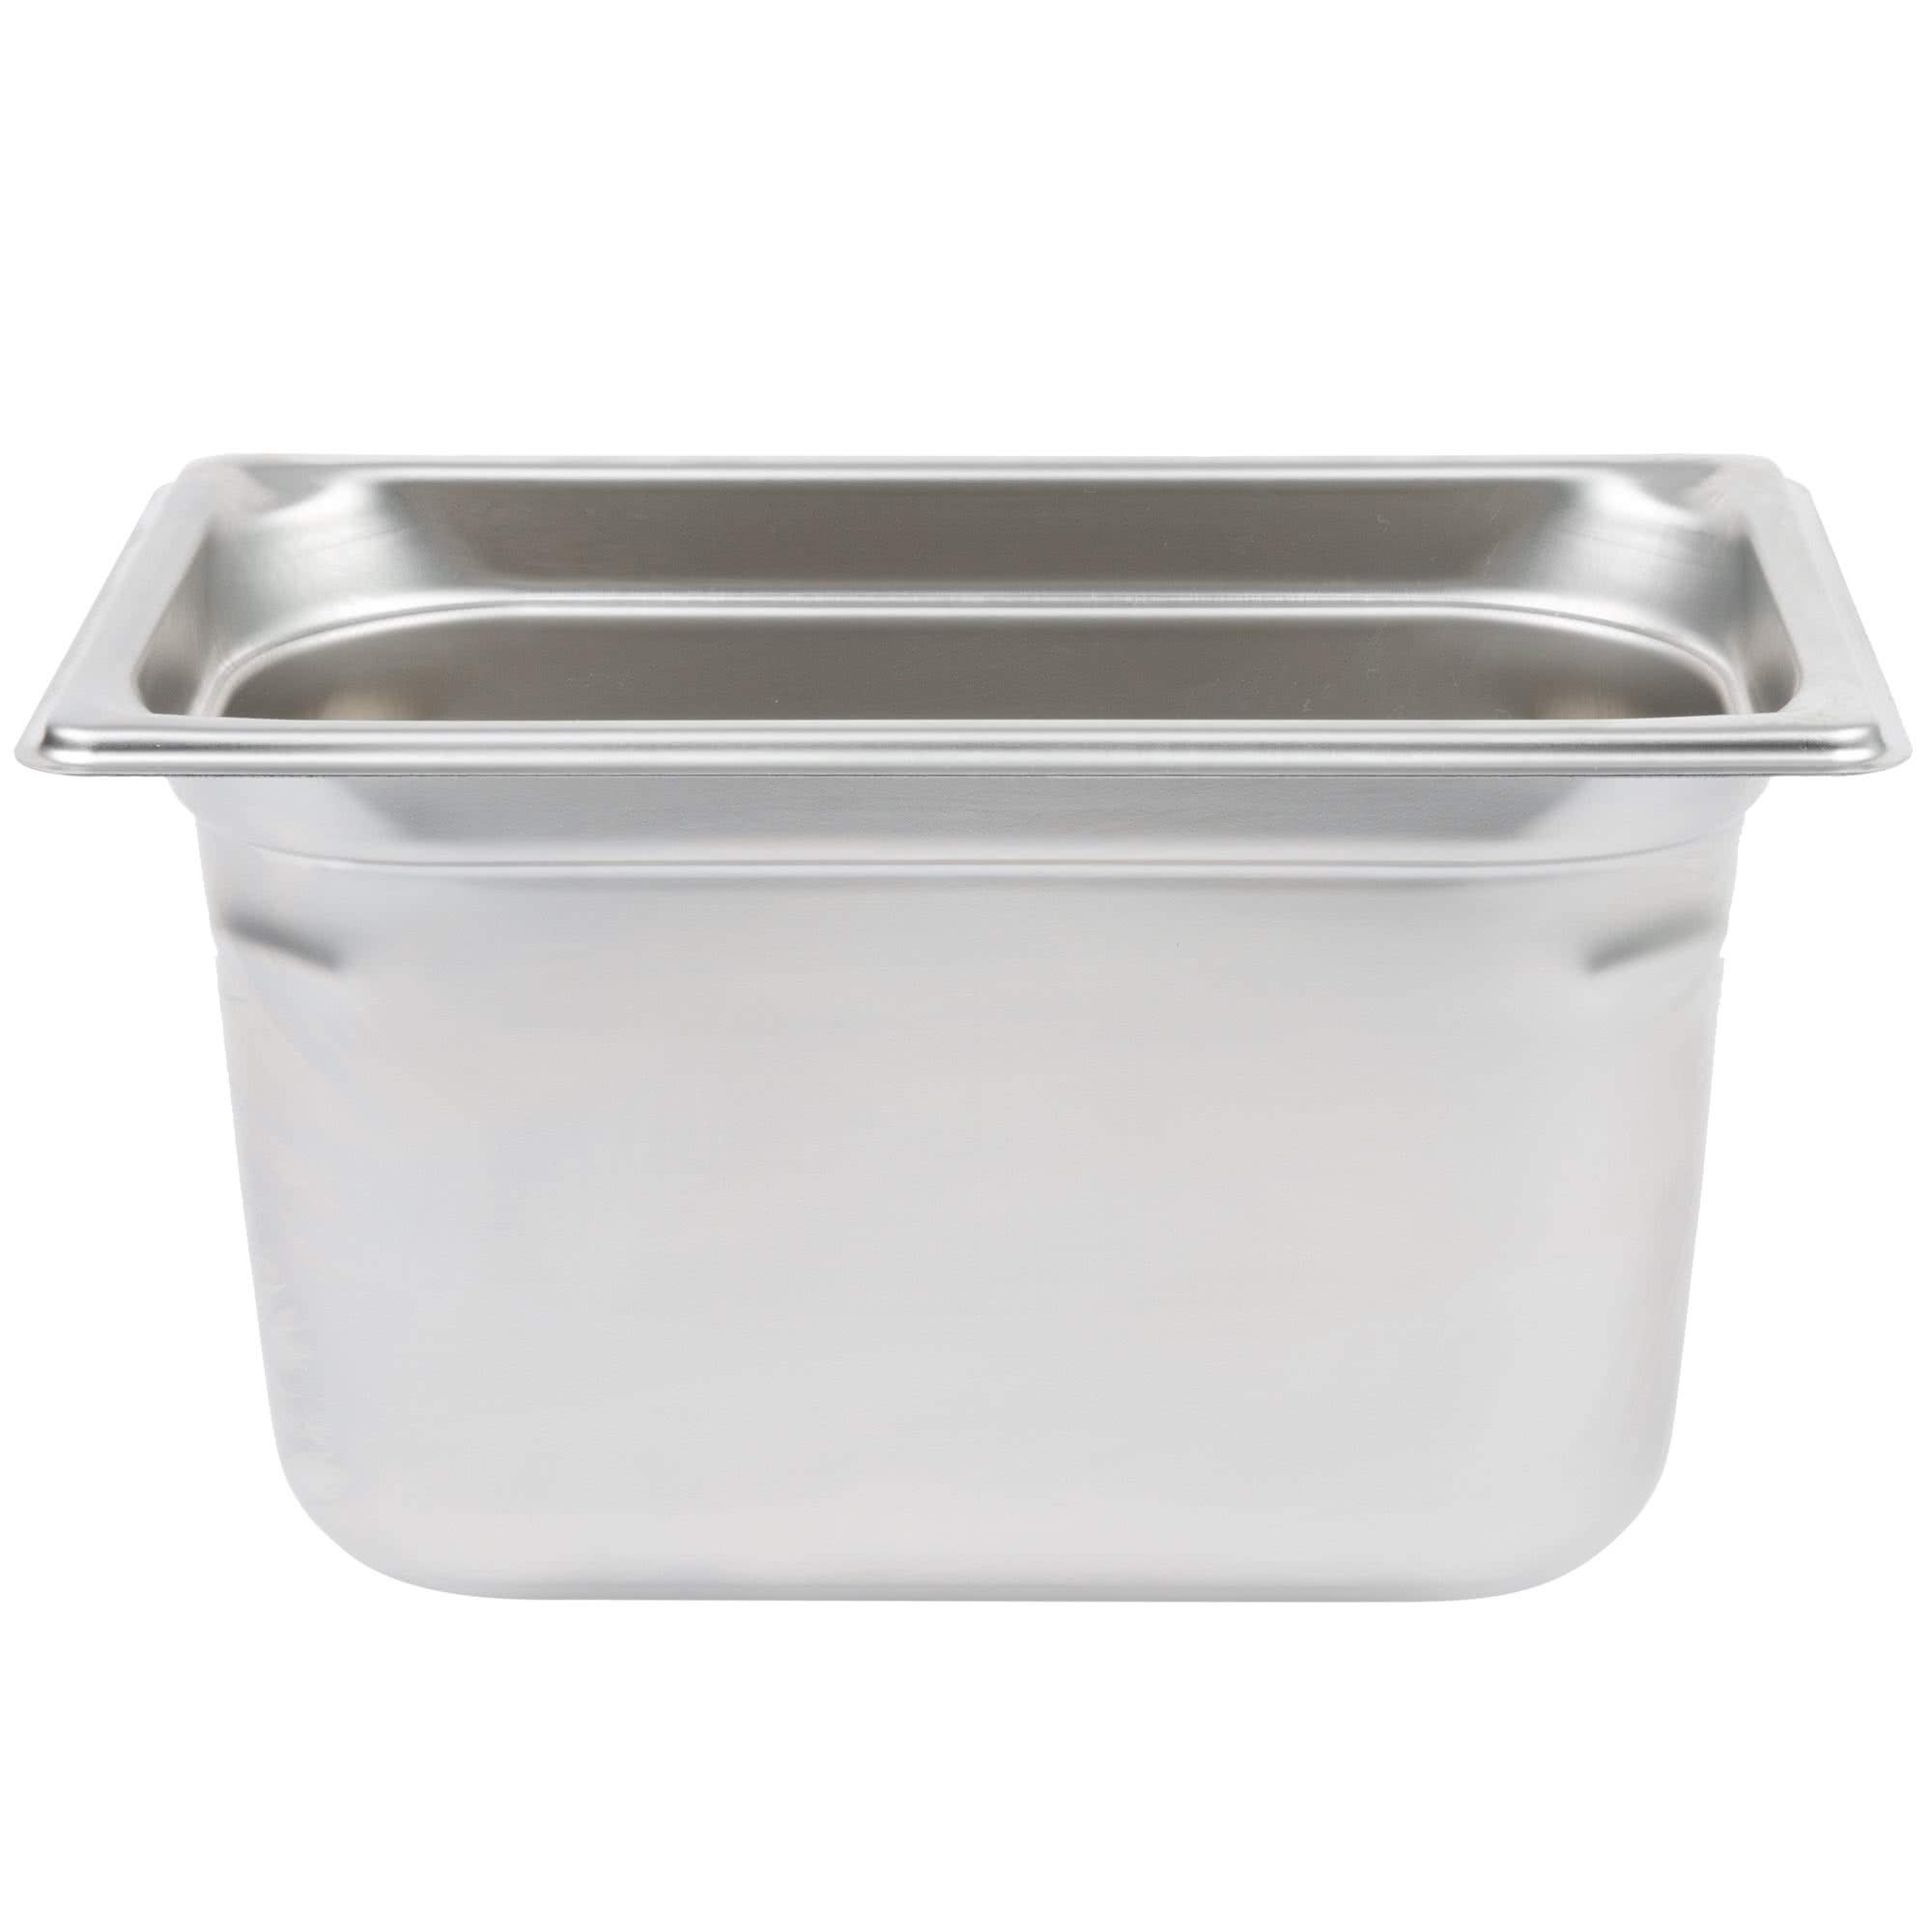 TableTop King 90462 Super Pan 3 1/4 Size Anti-Jam Stainless Steel Steam Table/Hotel Pan - 6'' Deep by TableTop King